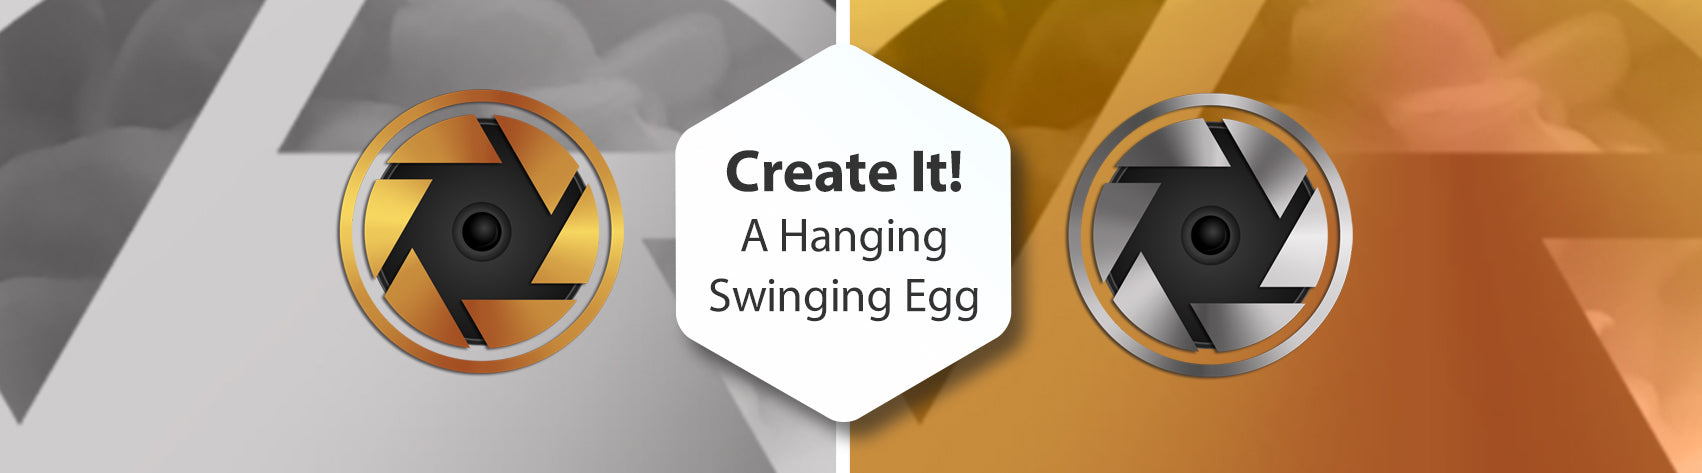 Create It! A Hanging Swinging Egg